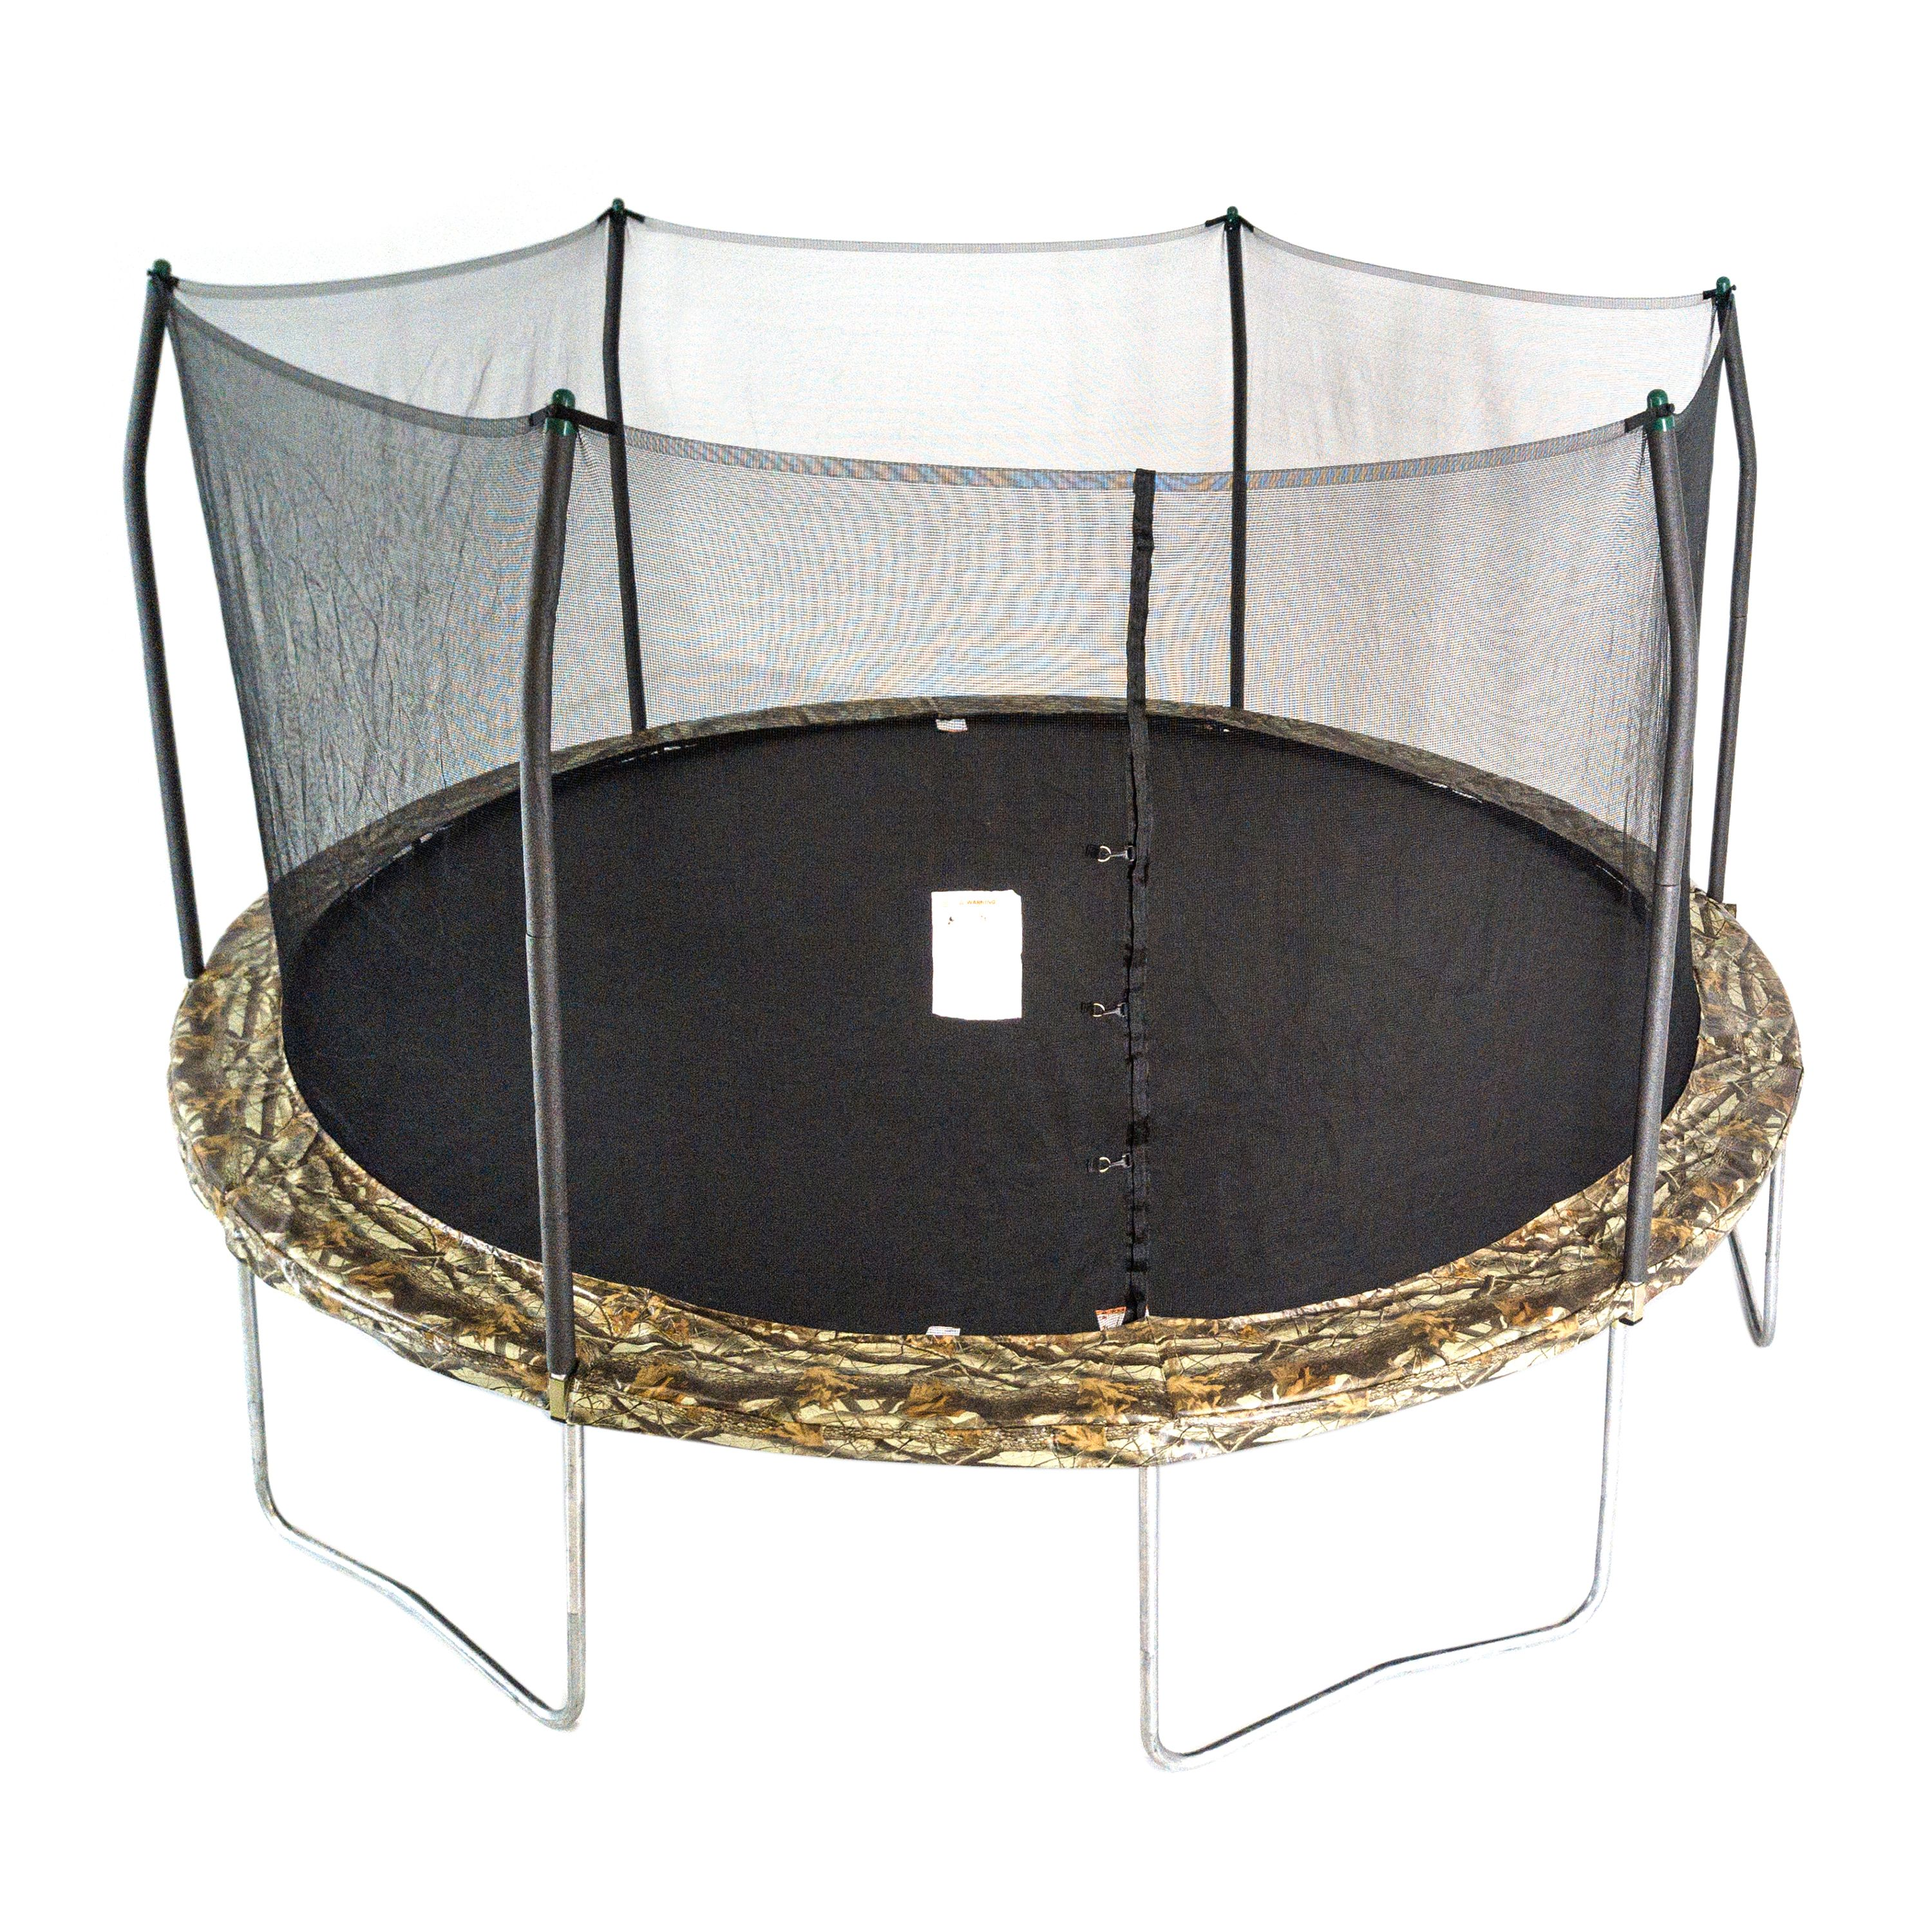 Skywalker Trampolines 15-Foot Trampoline, with Safety Enclosure, Camo